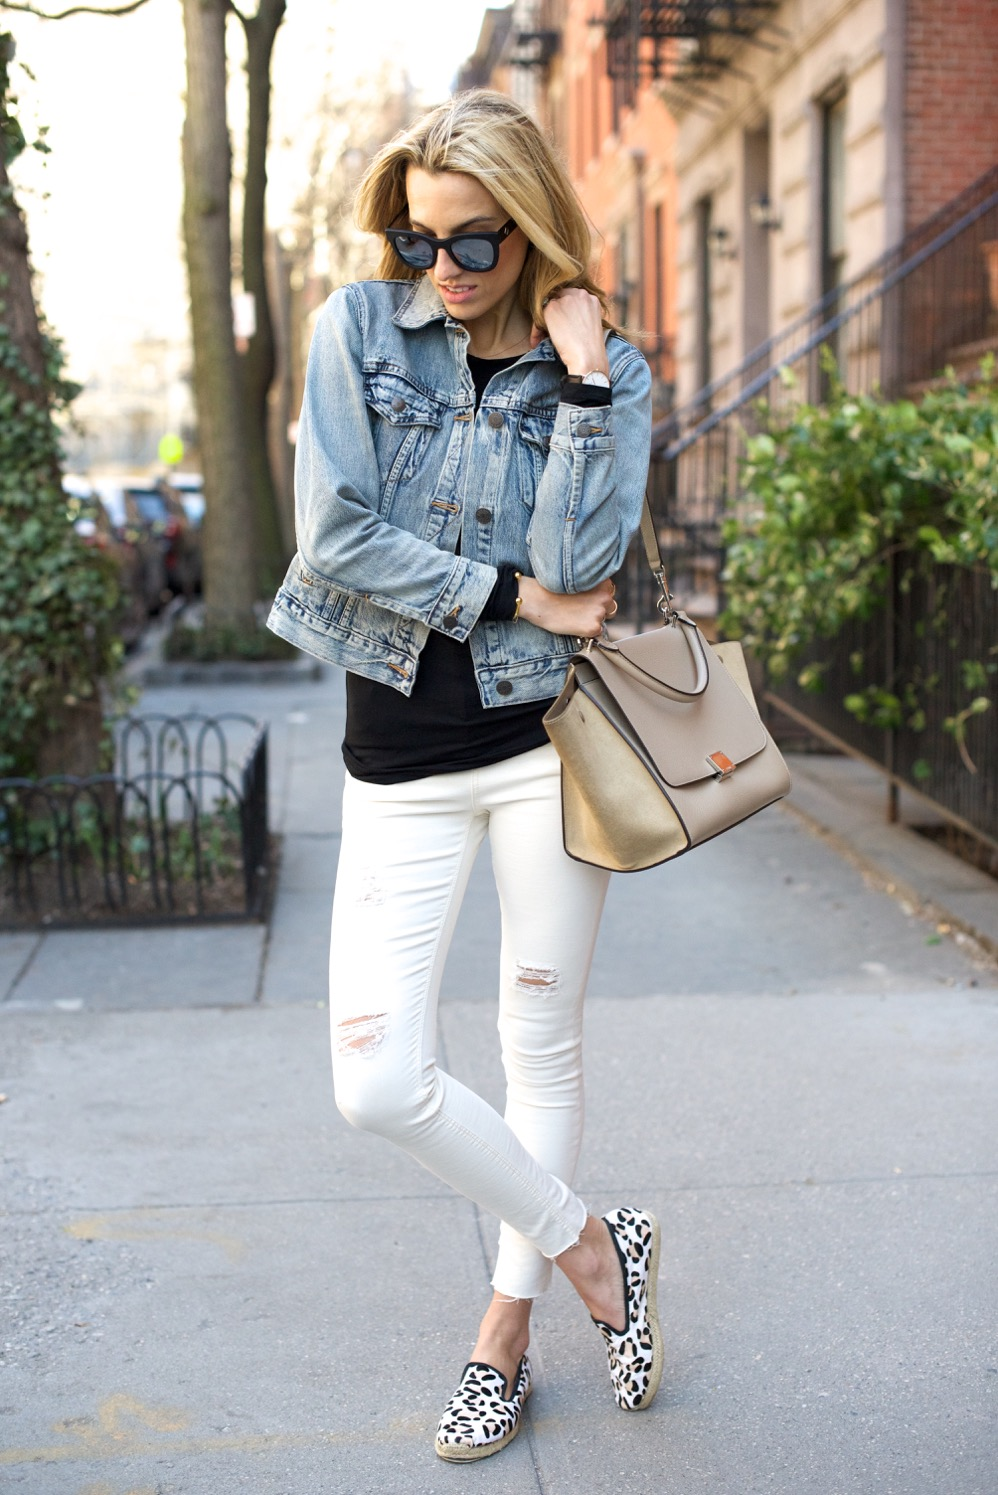 Topshop jeans, J Crew denim jacket - 10 of 13